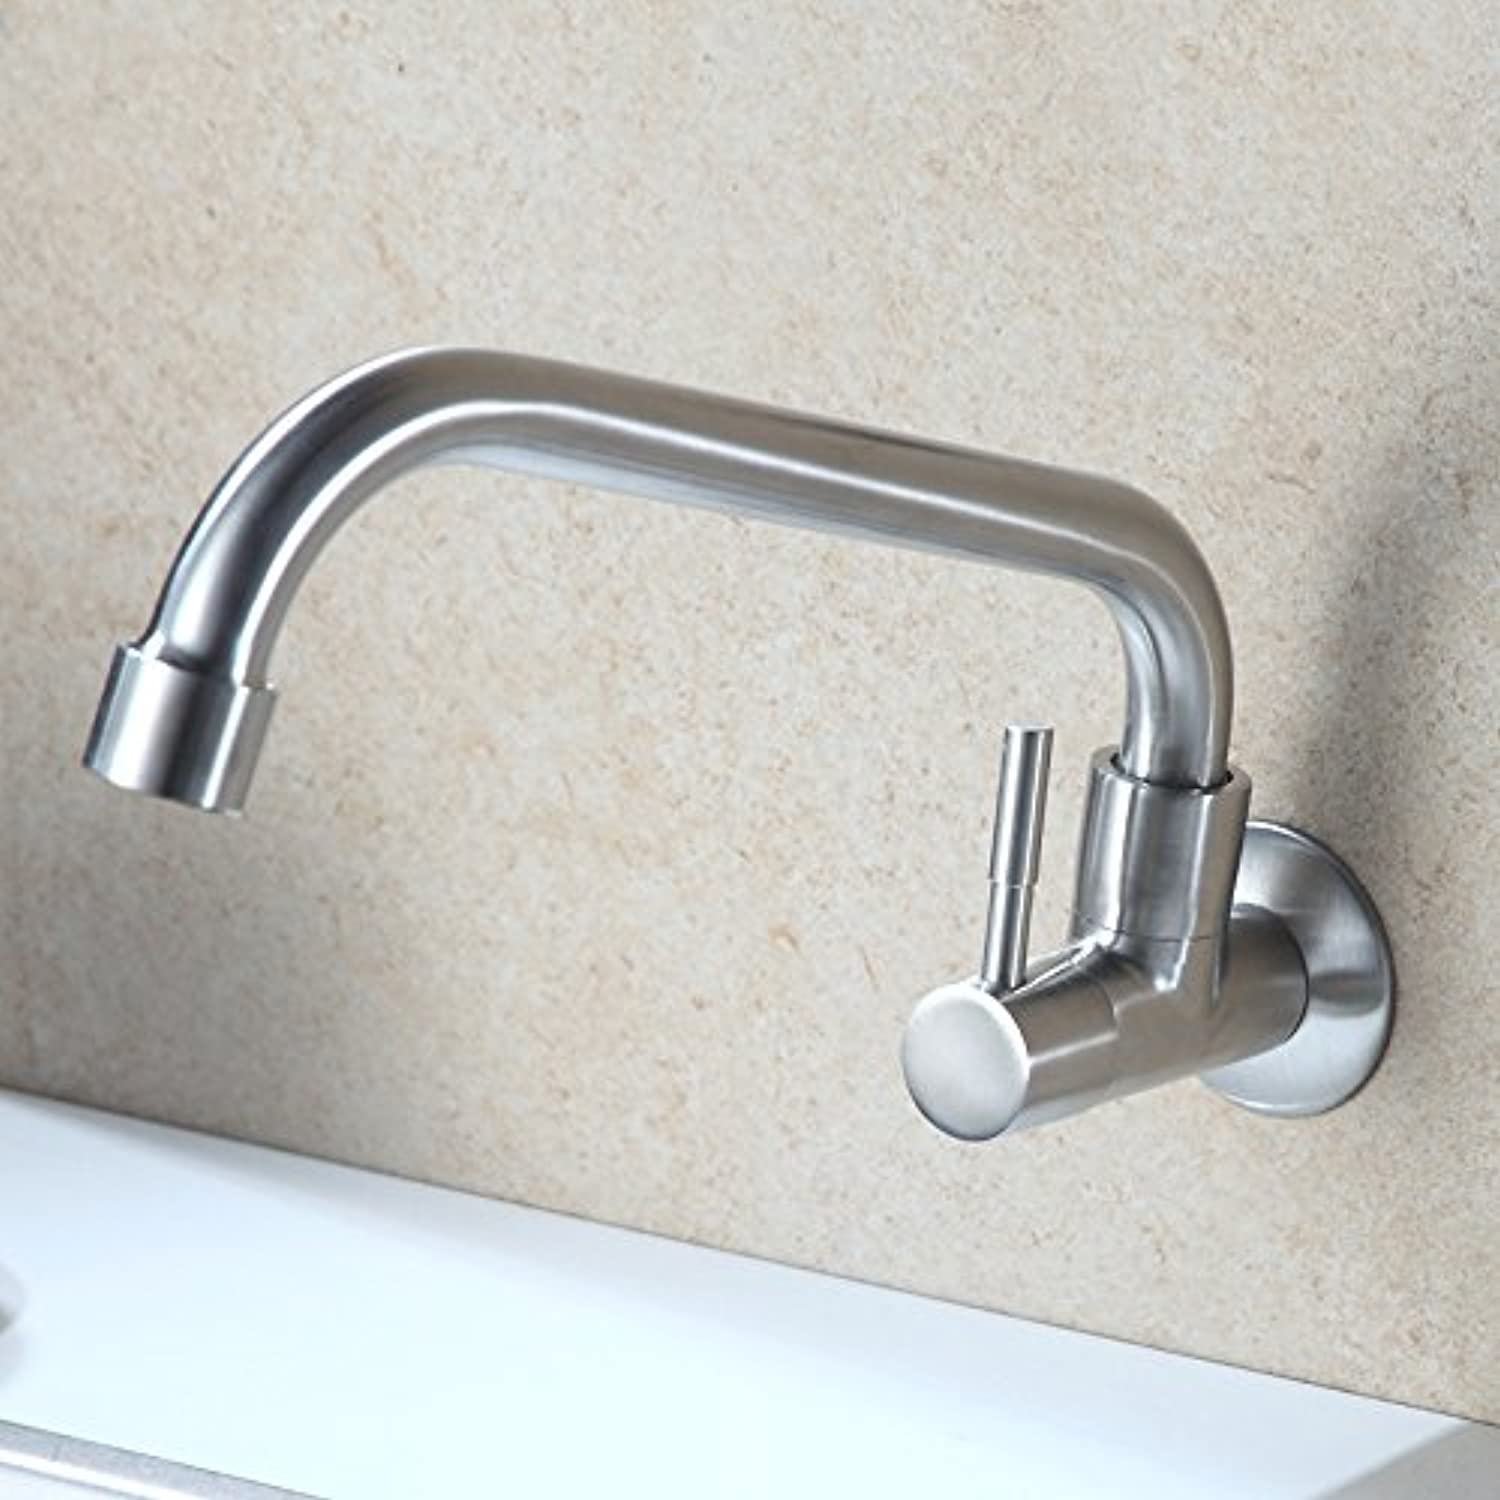 4 Stainless Steel Cold Wall Type Kitchen Sink Tap Seven Word Cross Open Sink Faucet,Fine Drawing